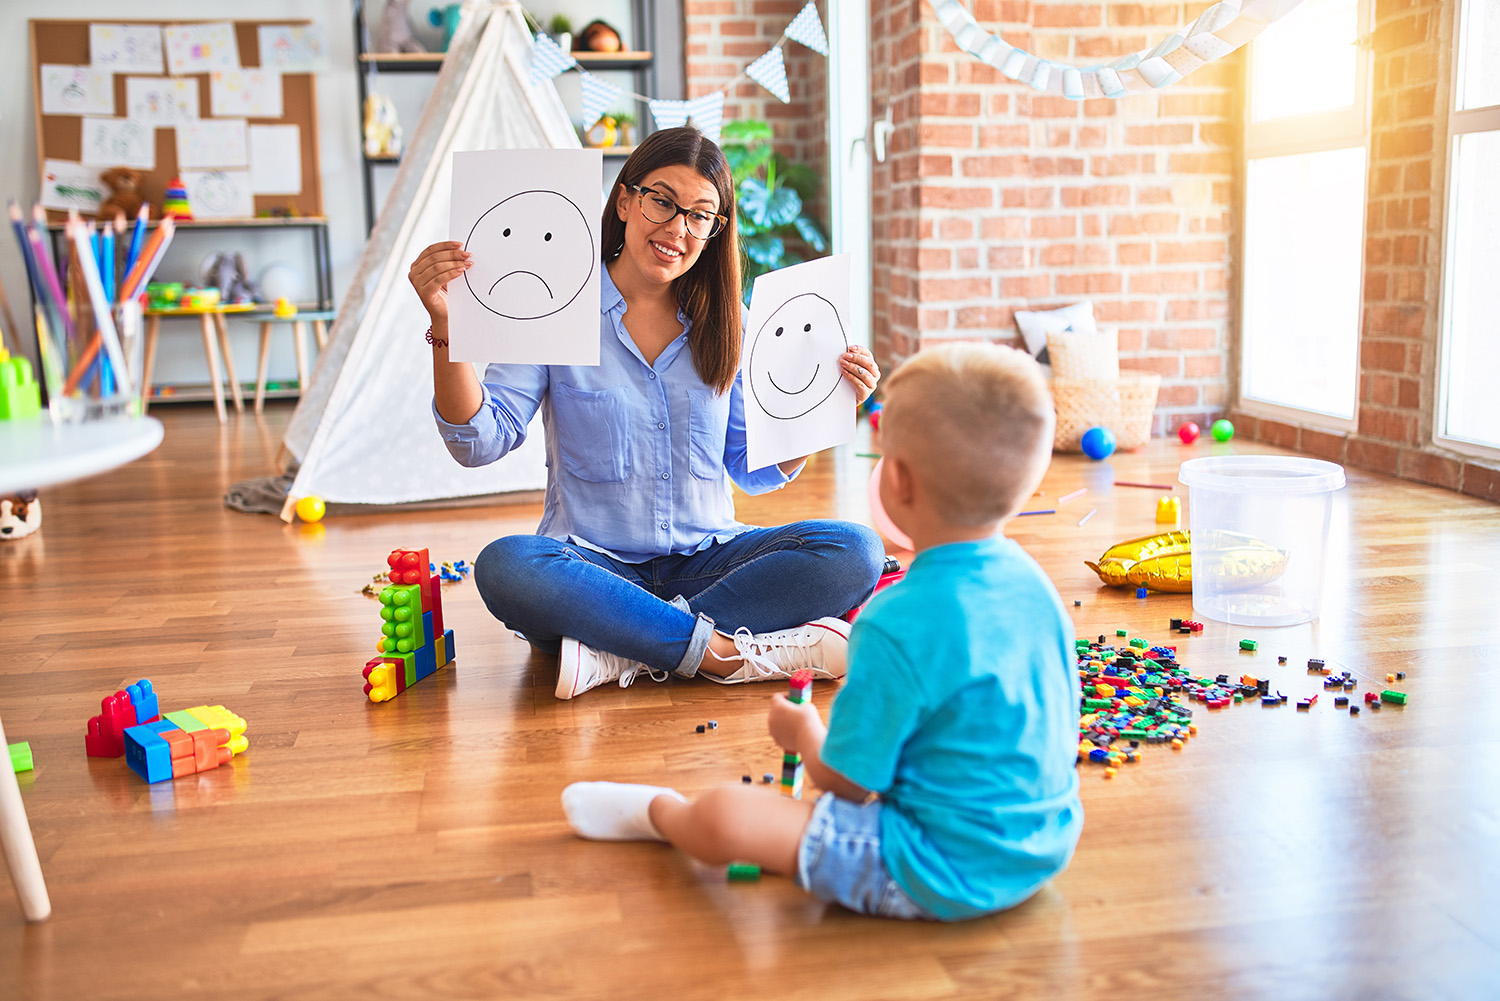 Butterfly Beginnings Counseling with Kim Feeney in Davenport Iowa answers why a Play Therapist can Help-image of therapist playing with child on floor